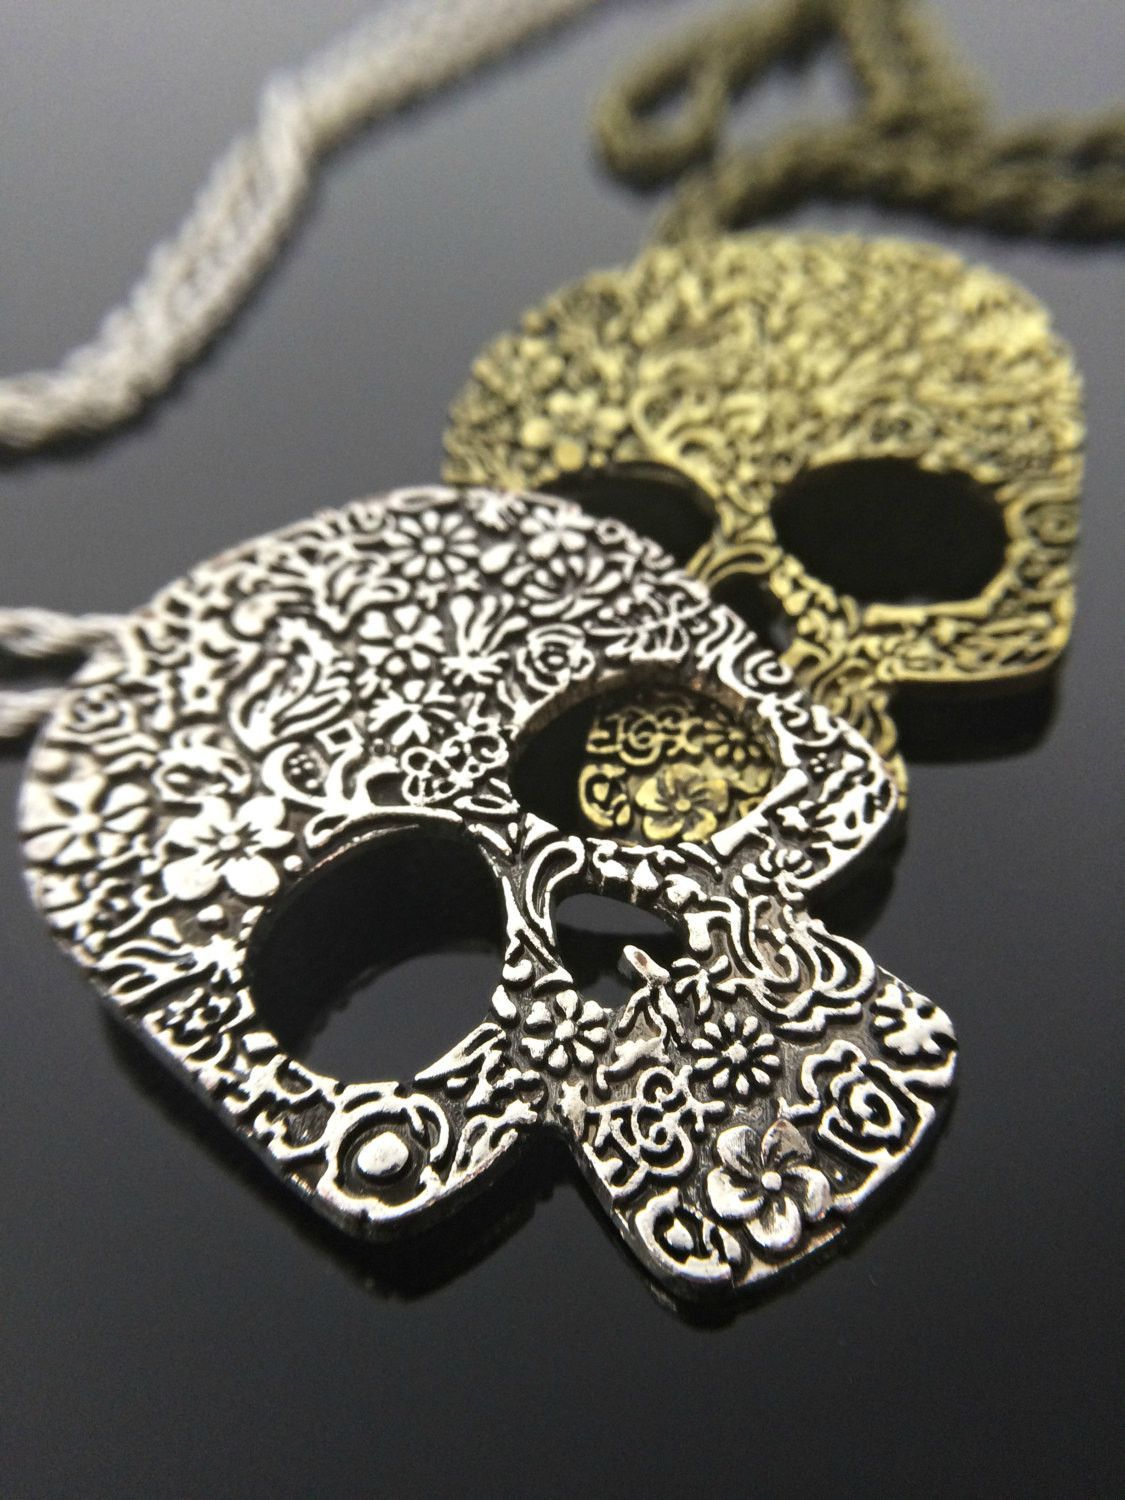 necklace cord image sugar or men products pendant on for women skull dktdesigns